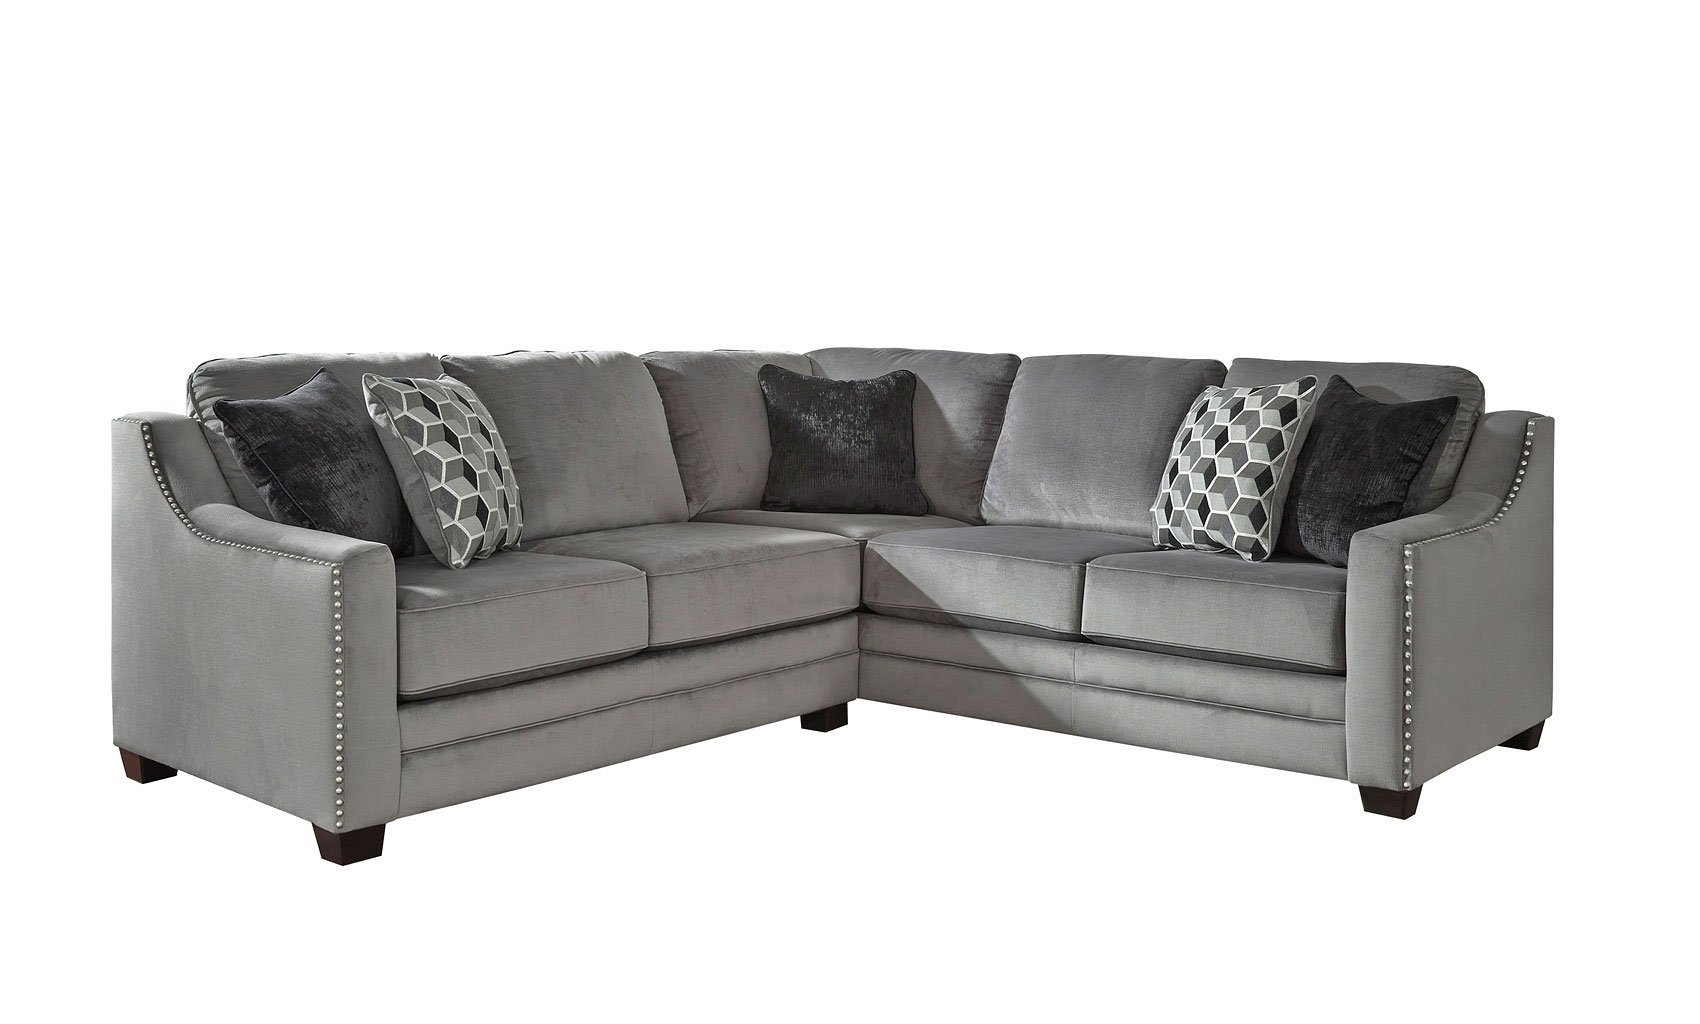 Loveseat Sectional | Whitecraftwoodard Mona Wicker Right Arm In Taron 3 Piece Power Reclining Sectionals With Right Facing Console Loveseat (View 4 of 20)